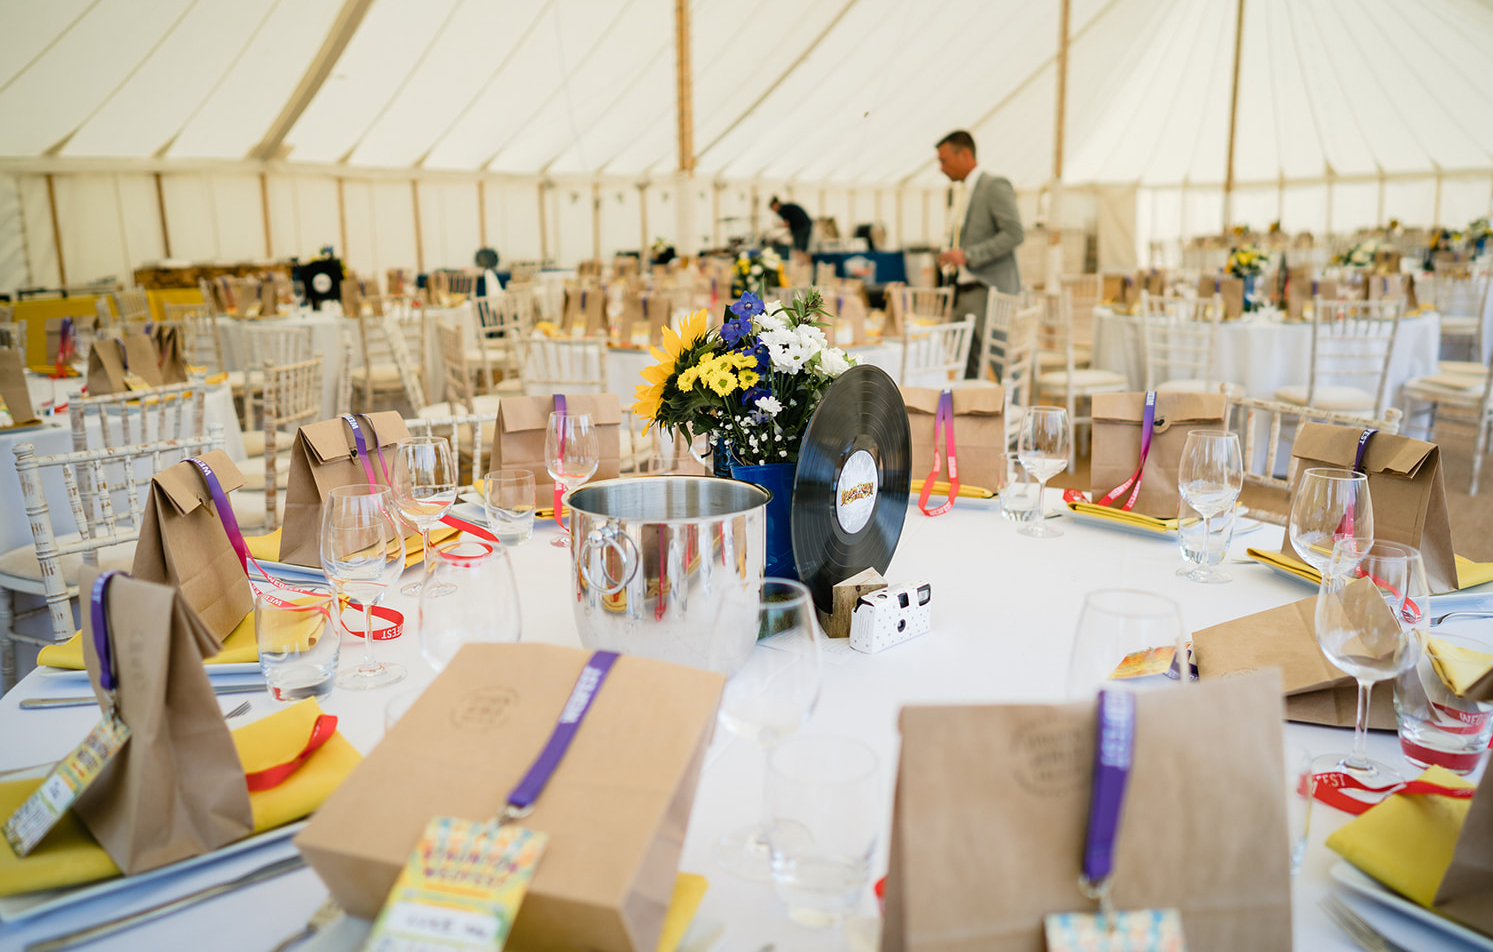 festival wedding table decoration lanyards favours vinyl records